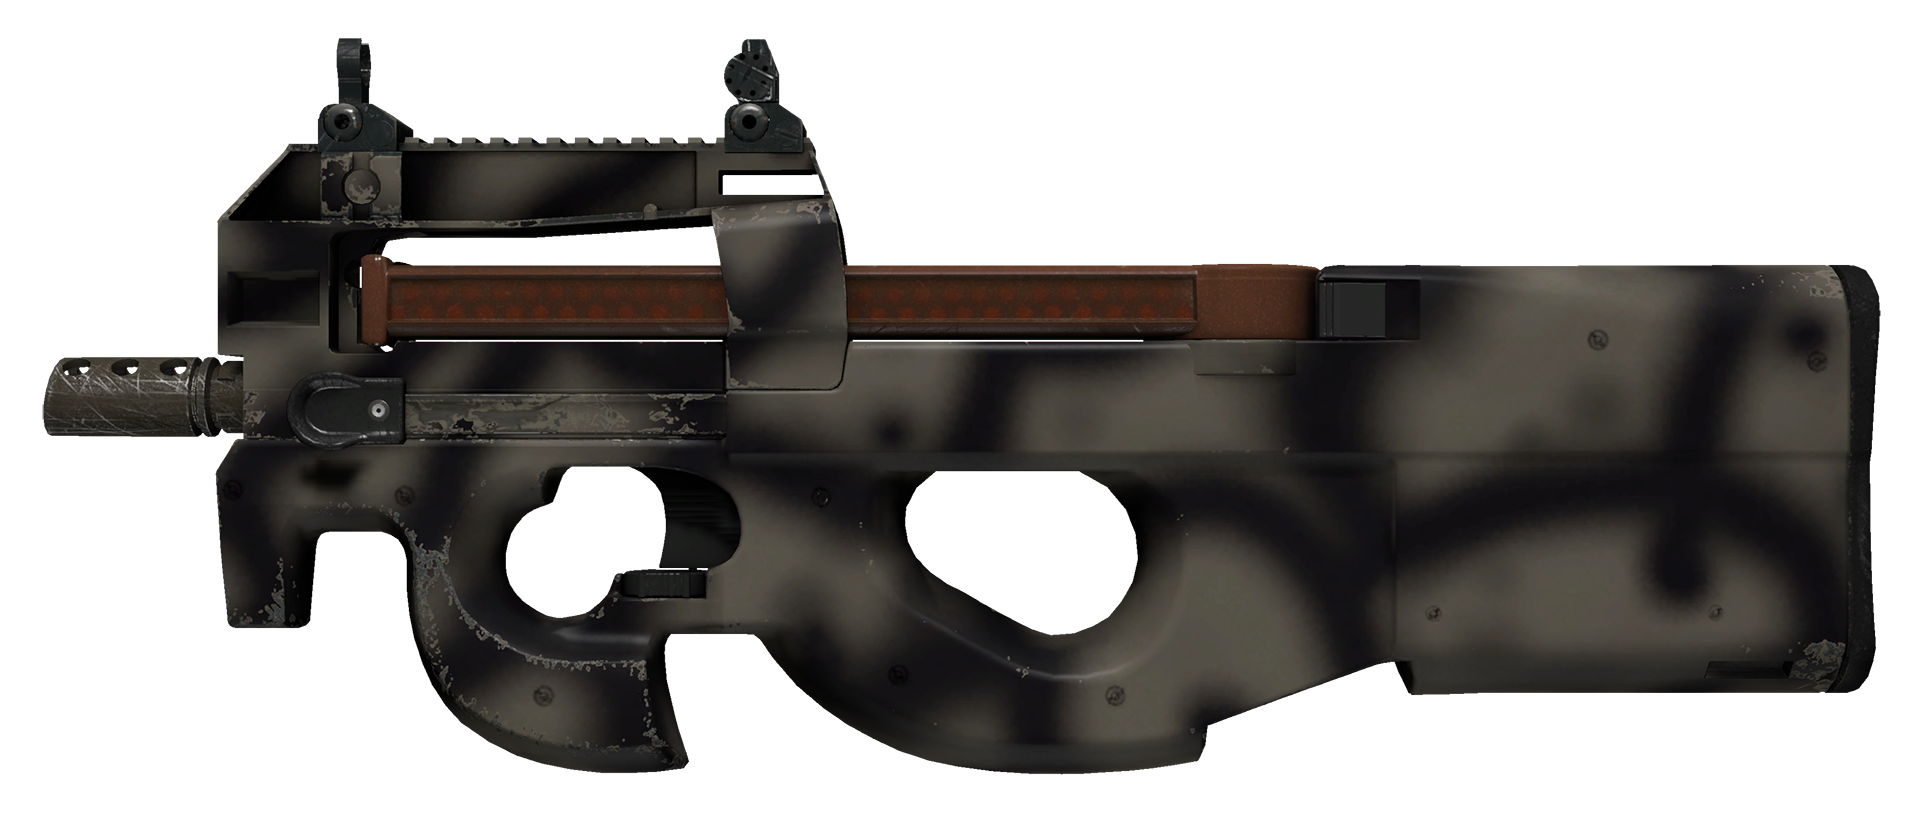 P90 Scorched Large Rendering